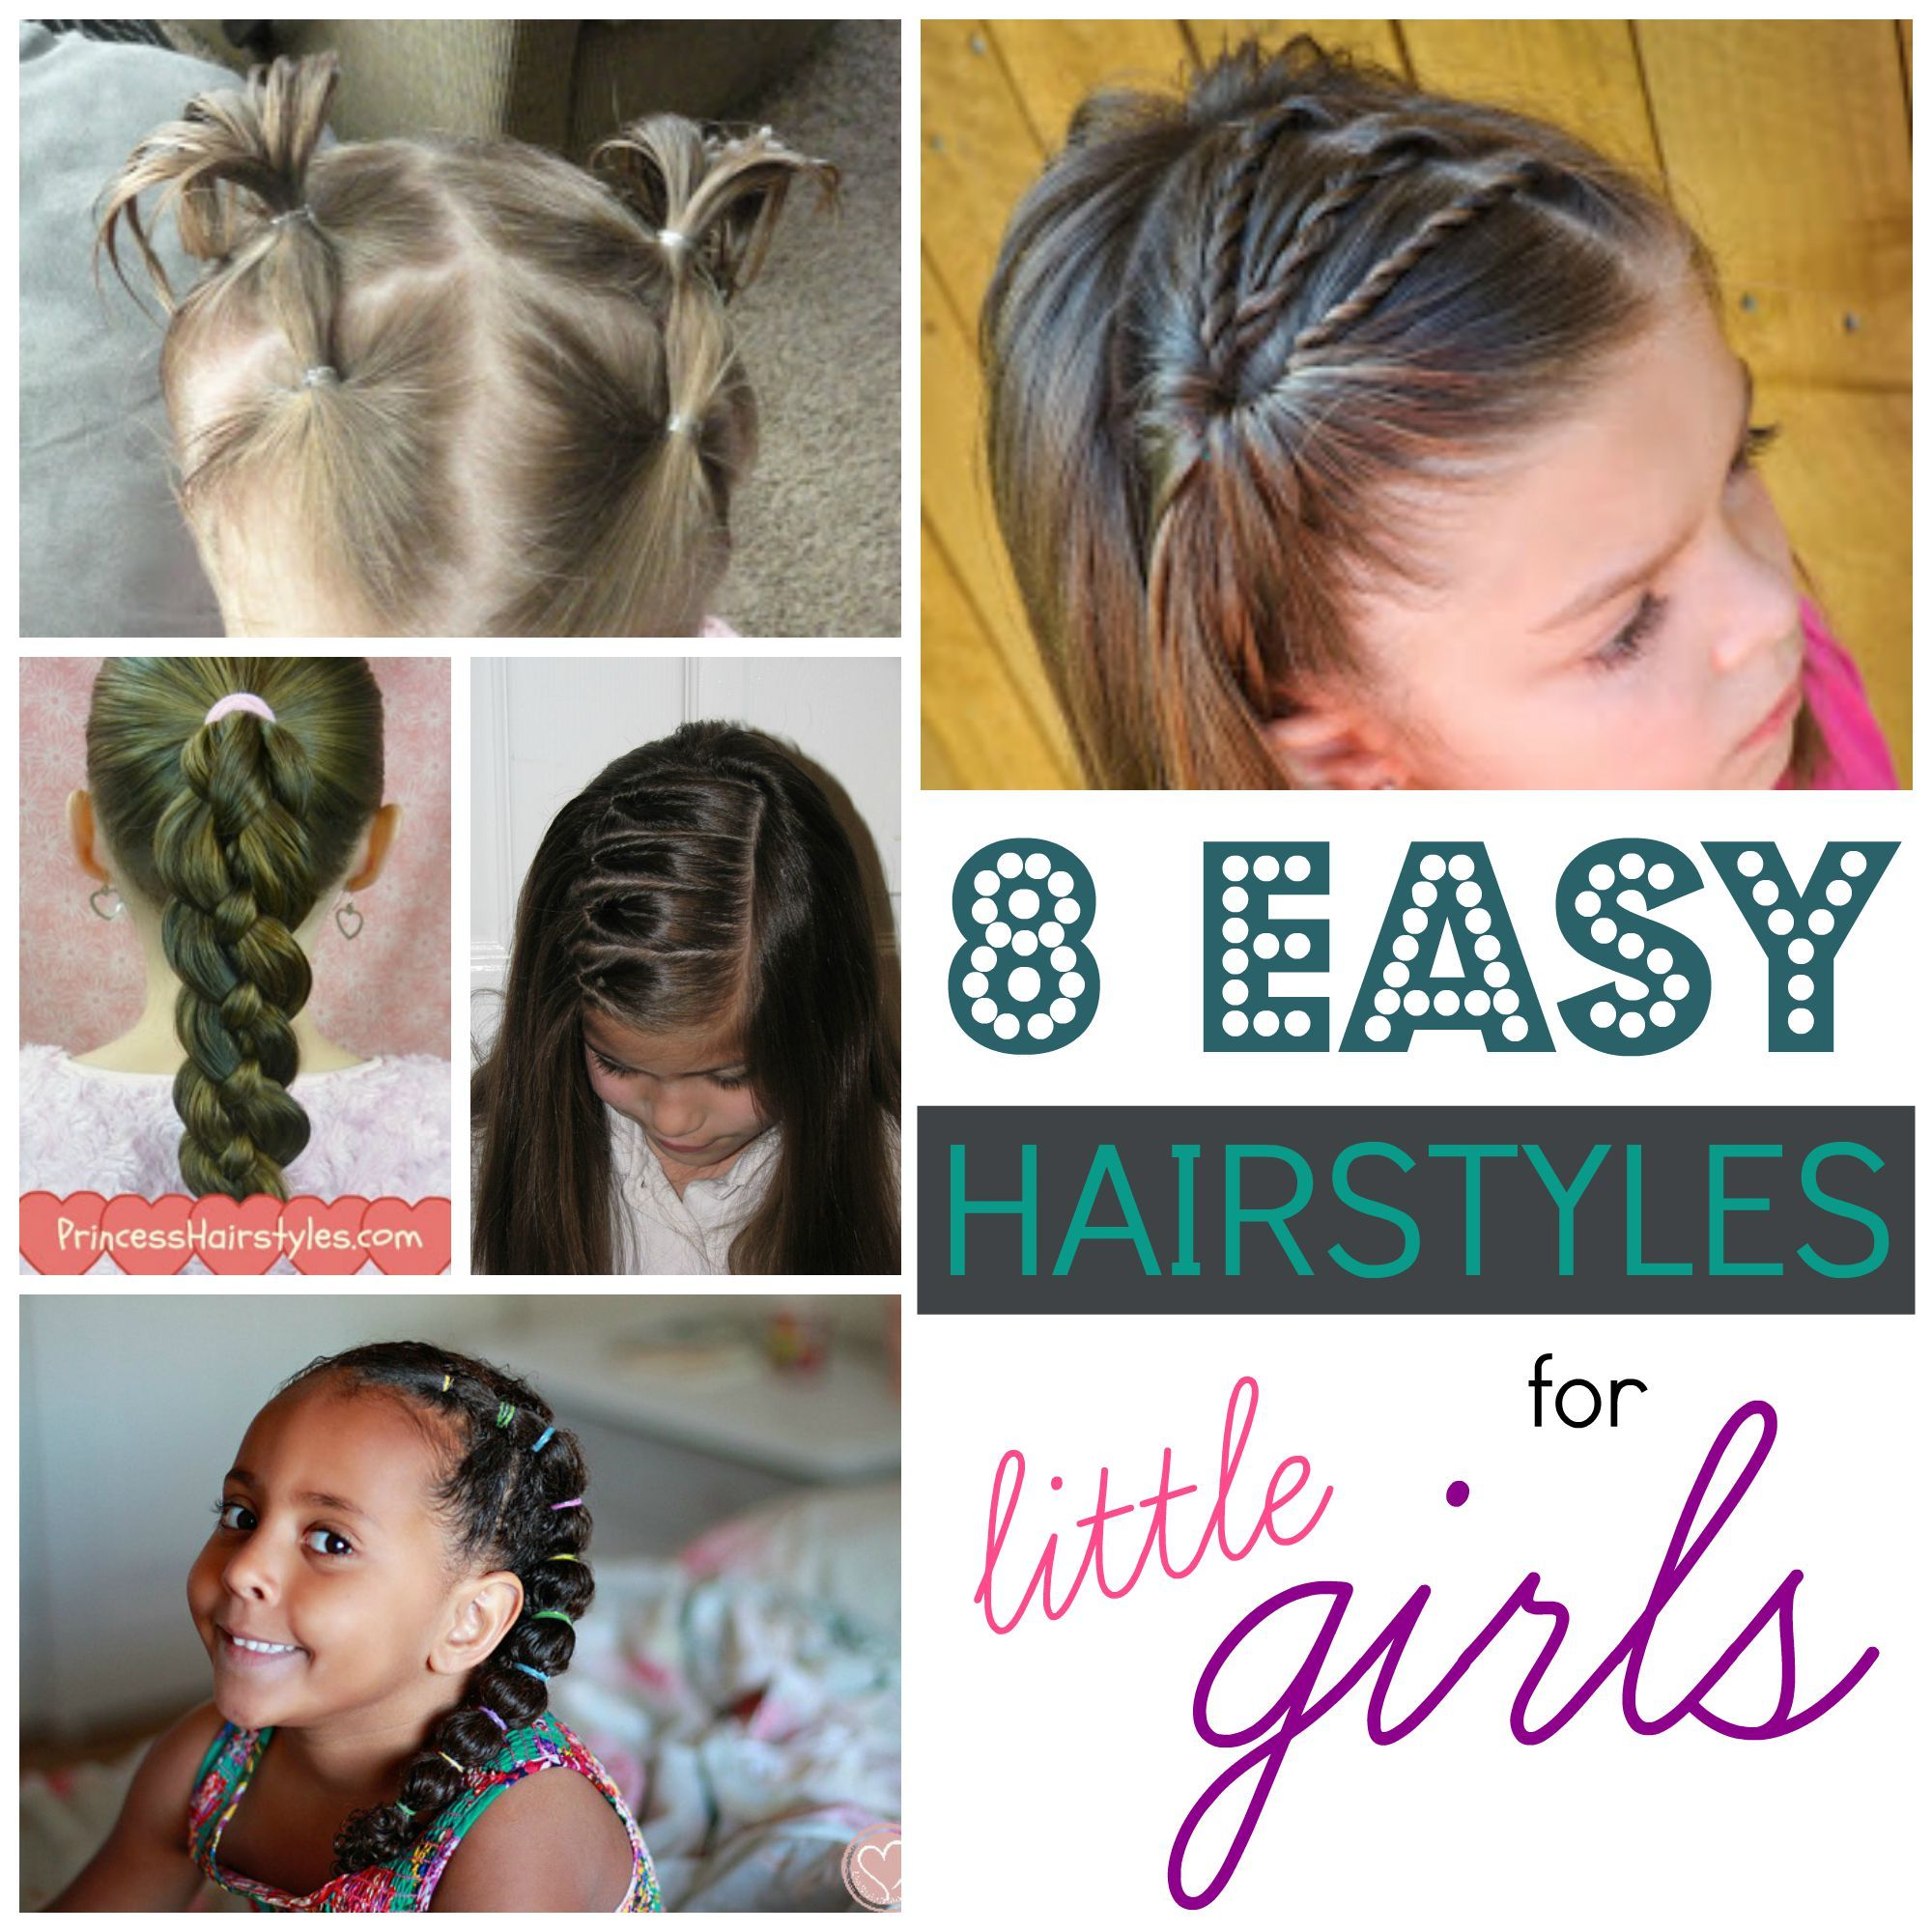 Find a cute new hairstyle for your little girl Easy Hairstyles